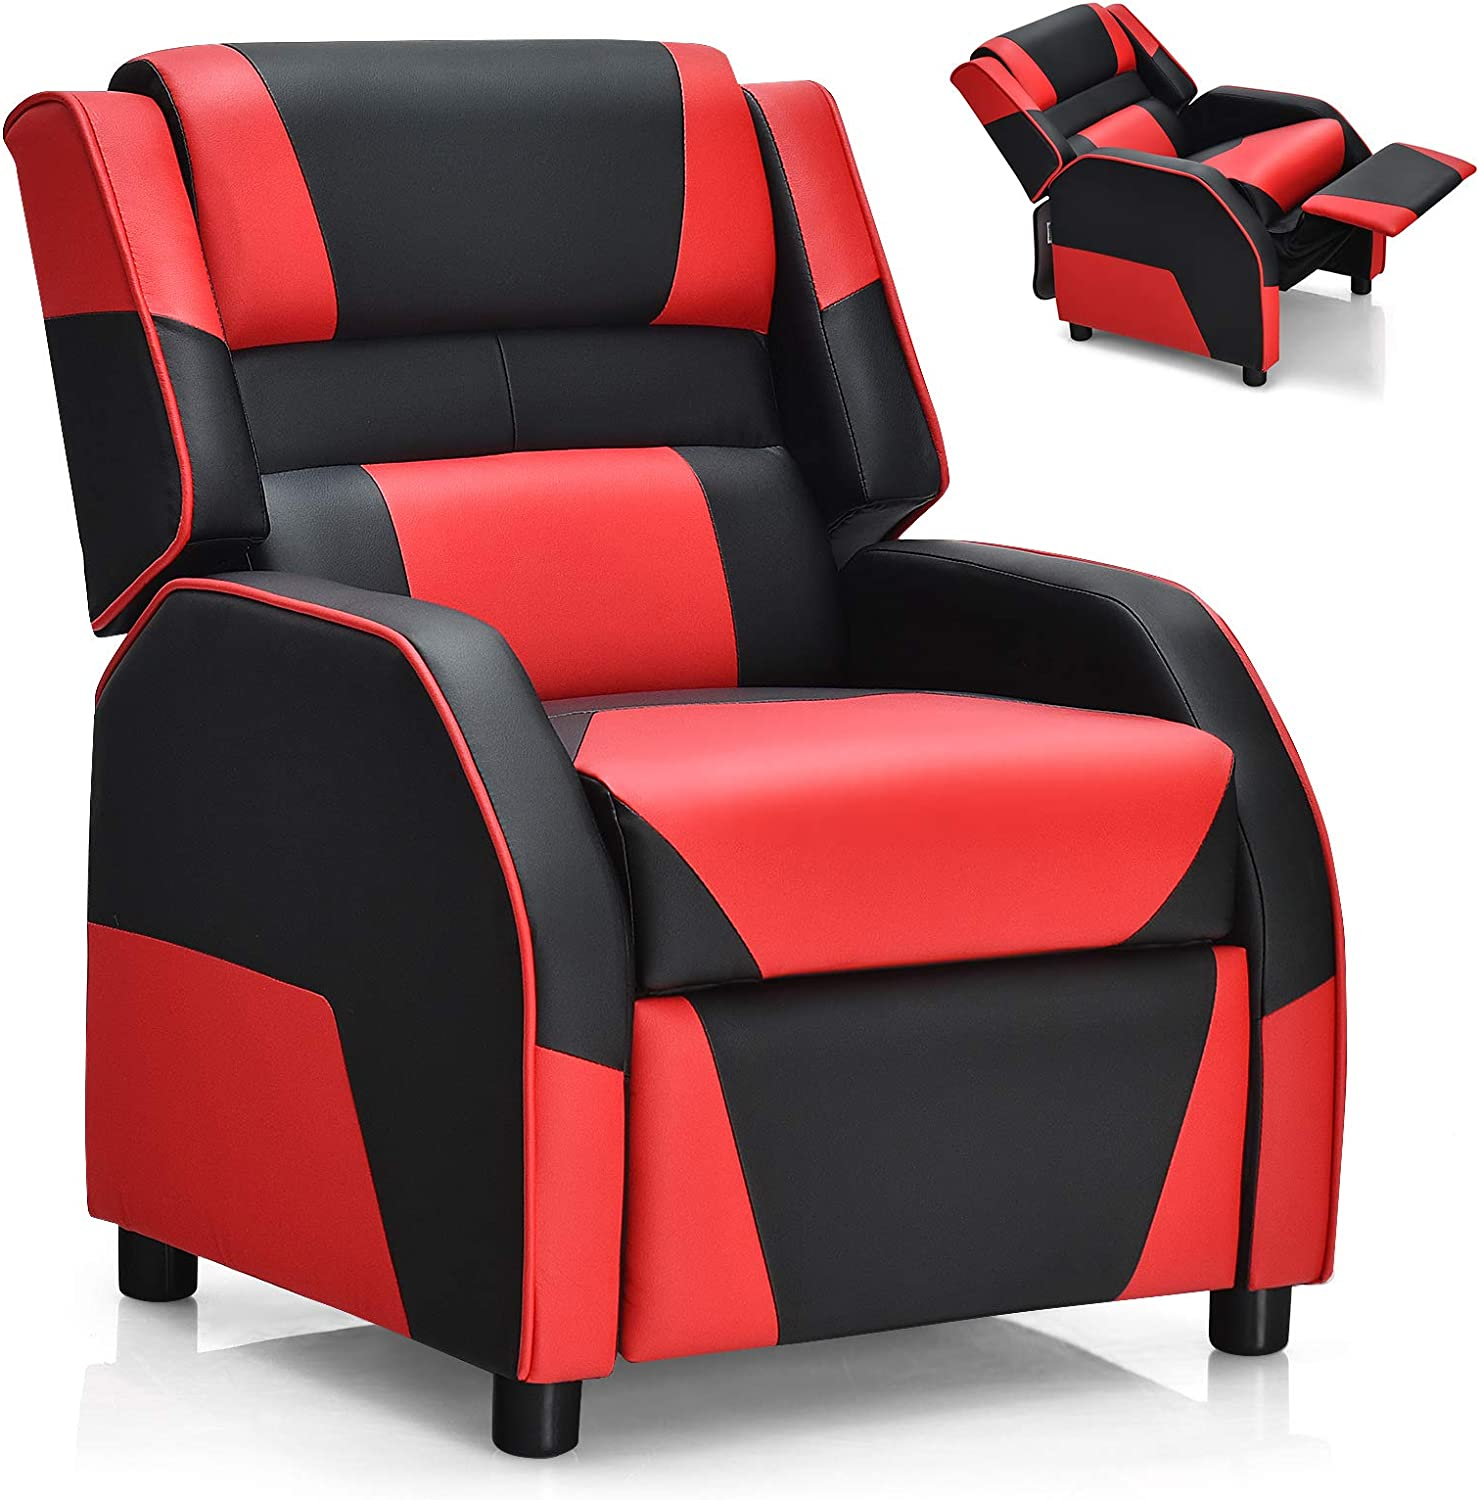 Best Lounge Chair for Kids: CostZon Kids Gaming Recliner Chair